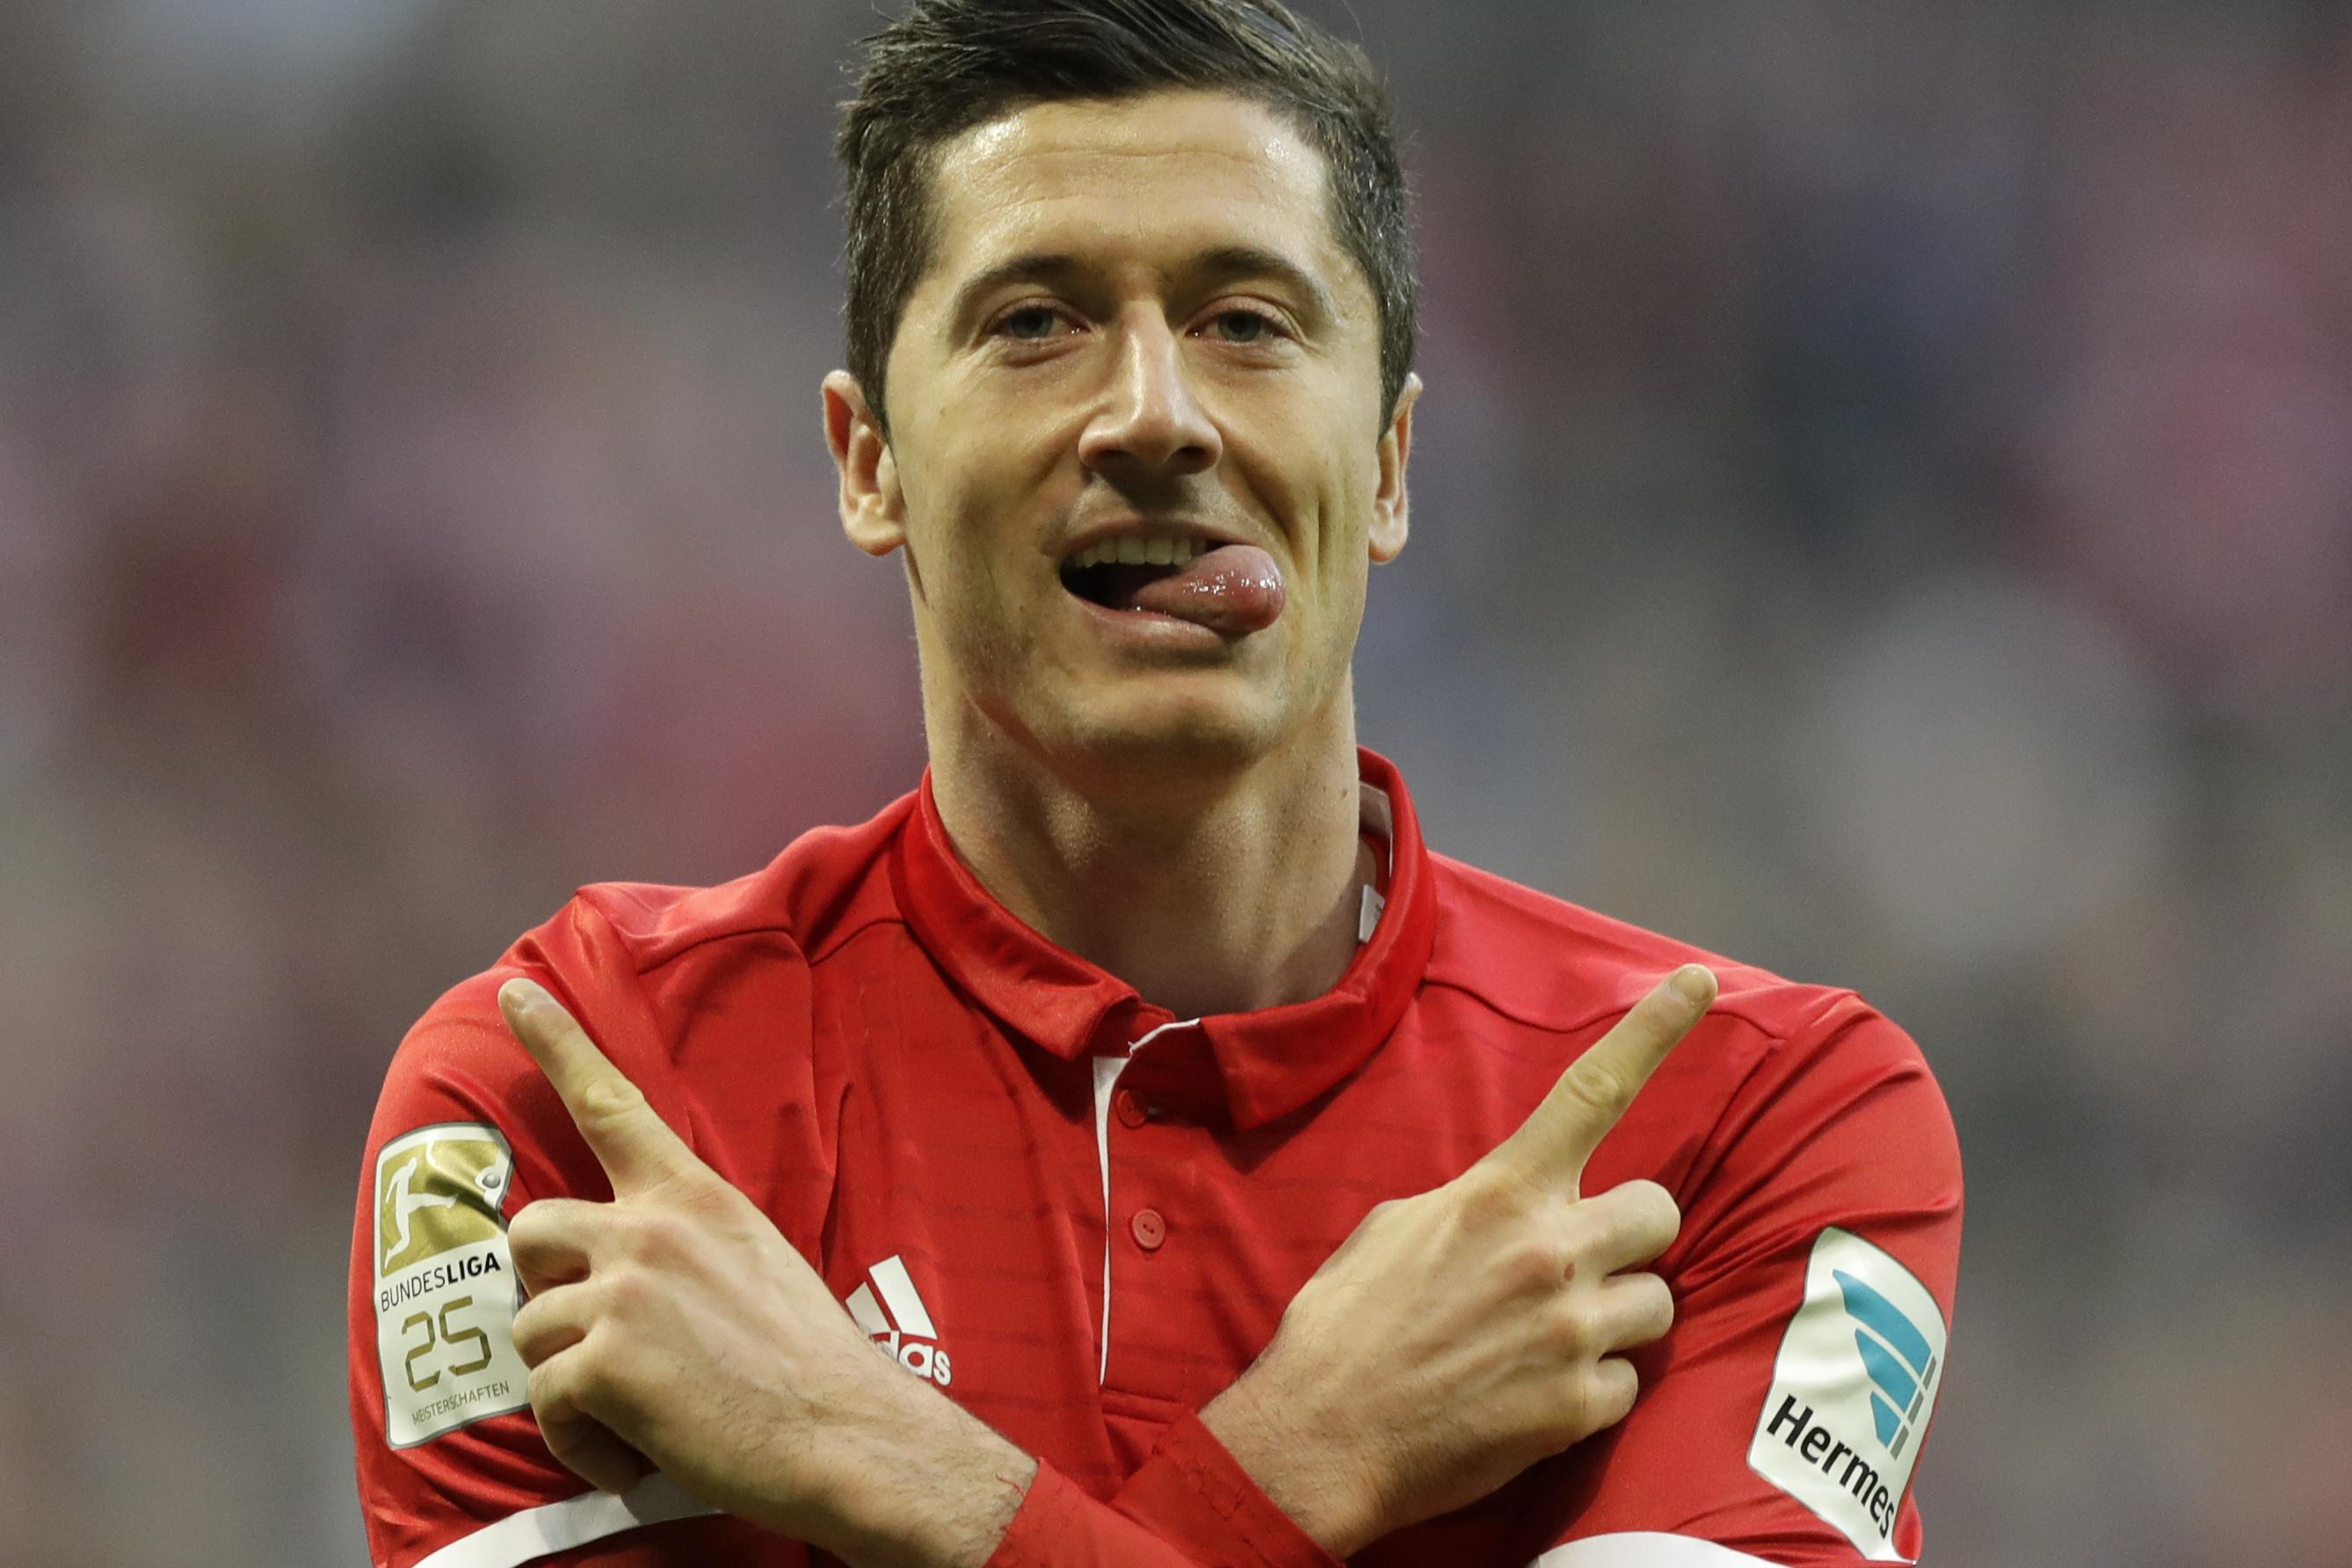 Lewandowski has been offered the chance to become the world's highest paid player in China